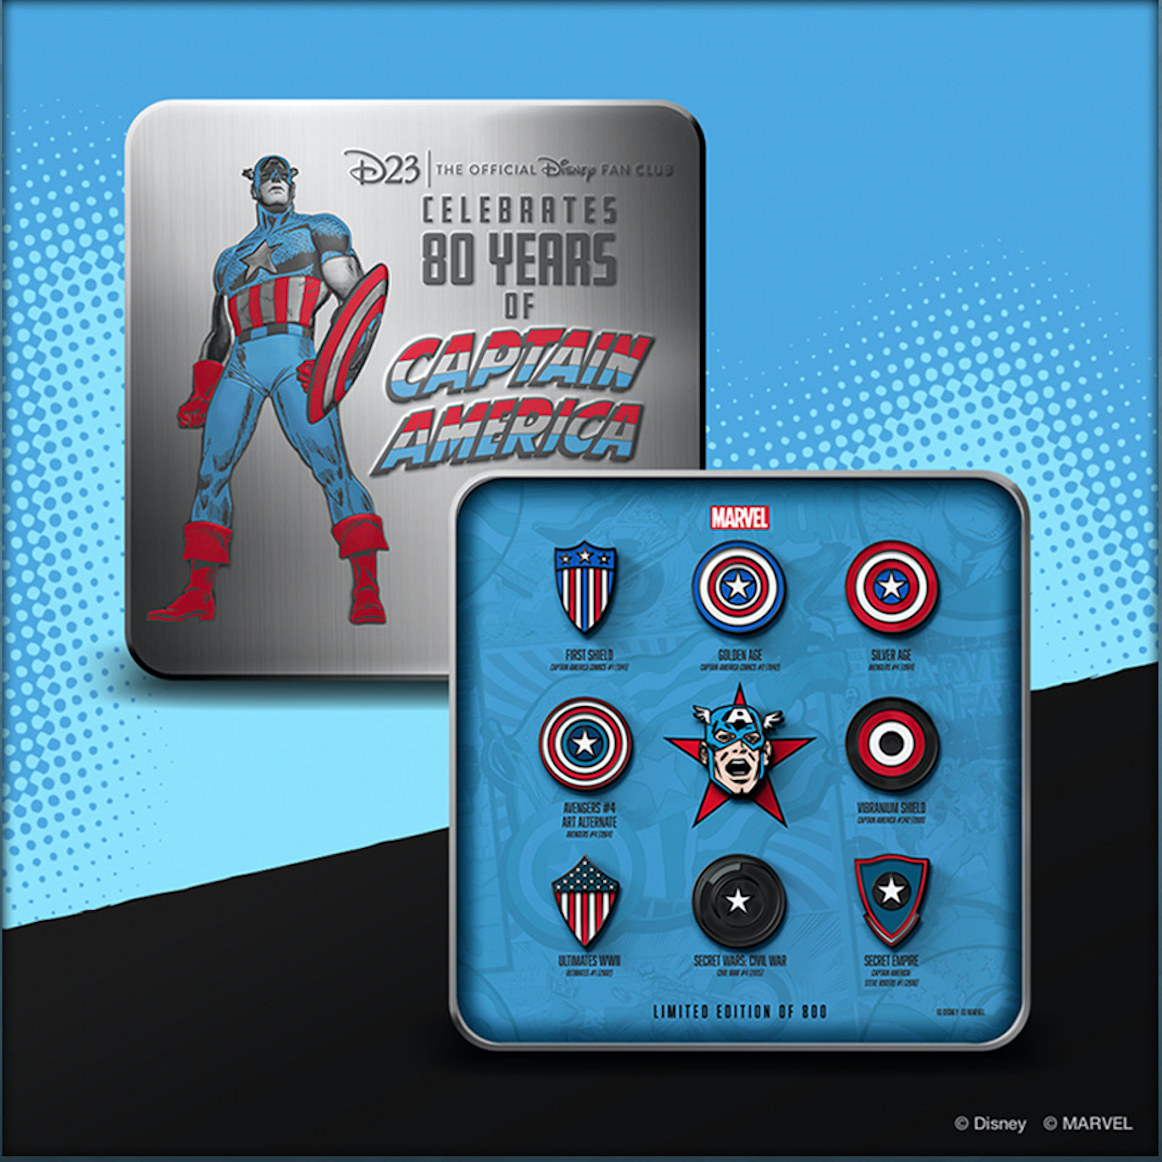 Celebrate 80 years of Captain America Pins